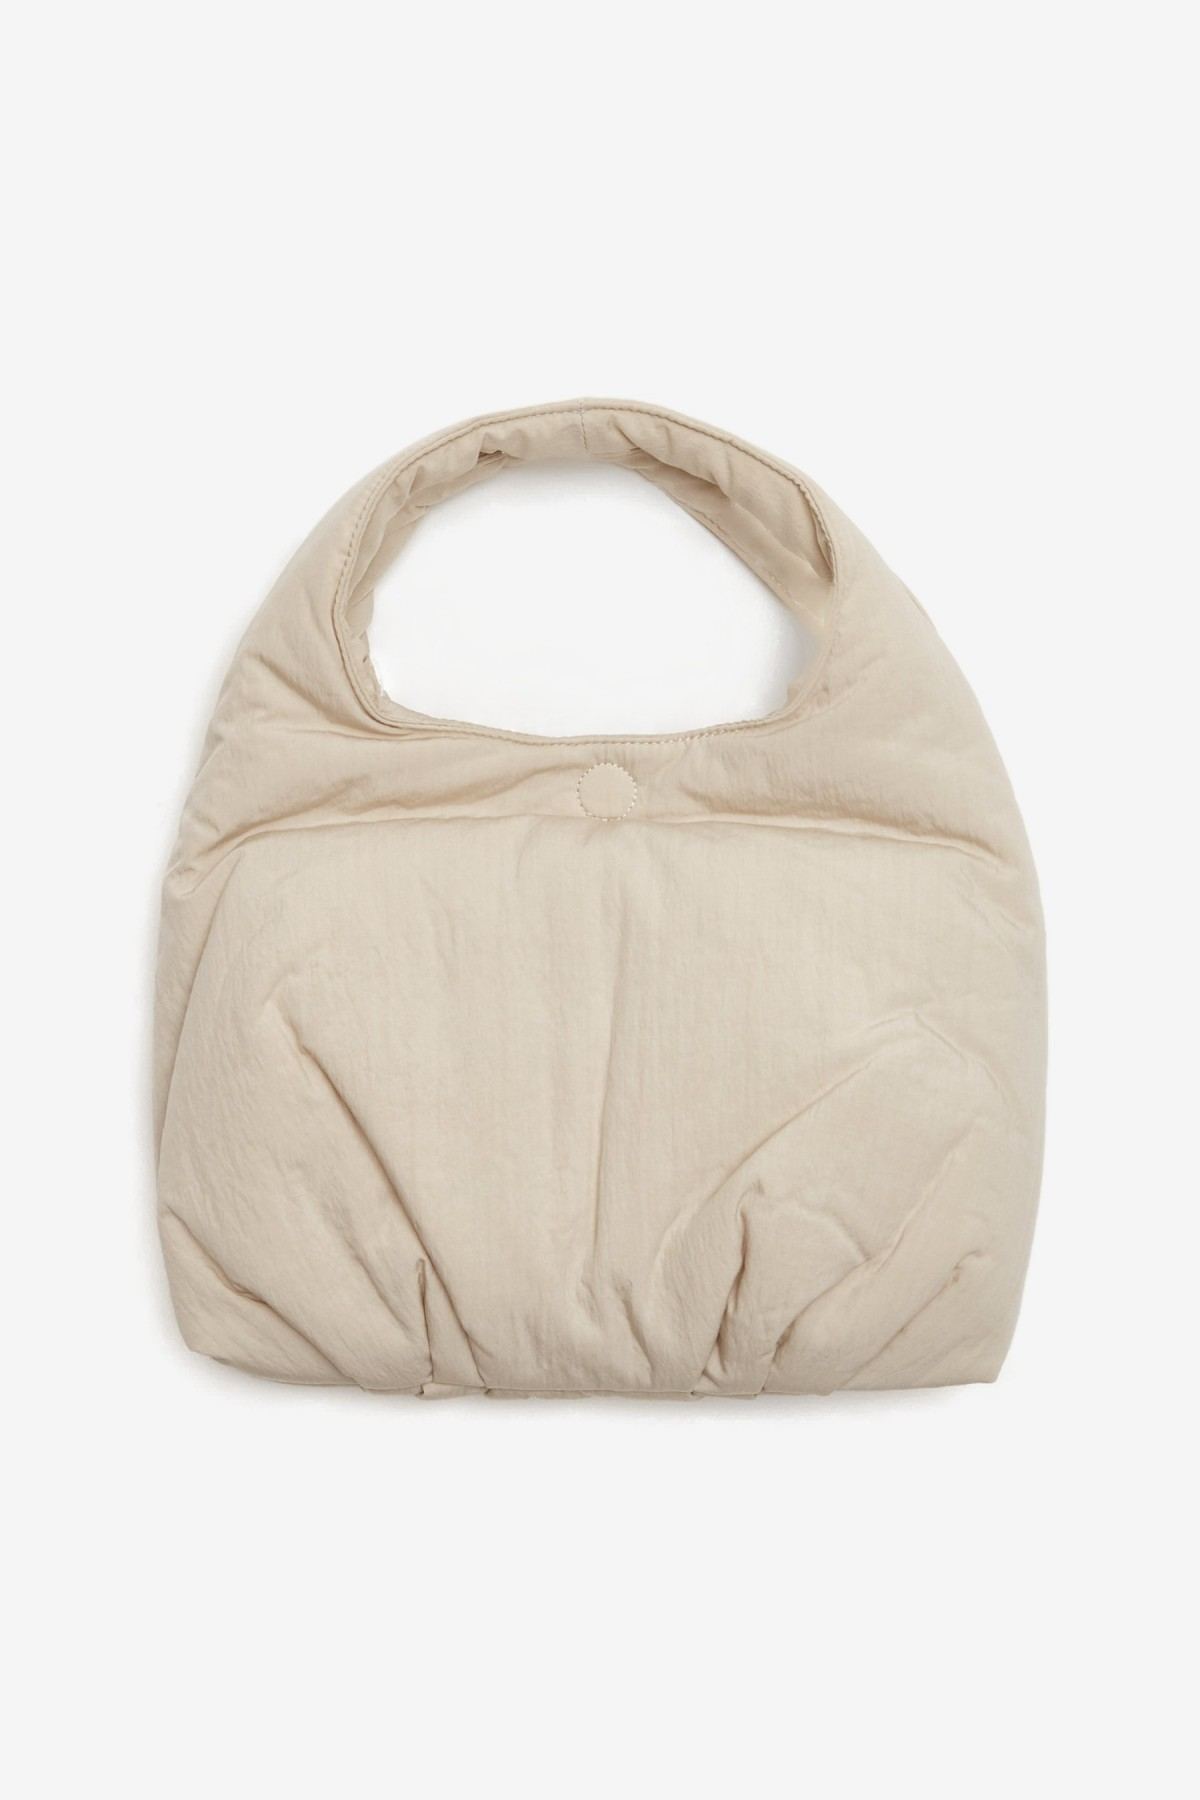 Amomento Small Padded Bag in Beige